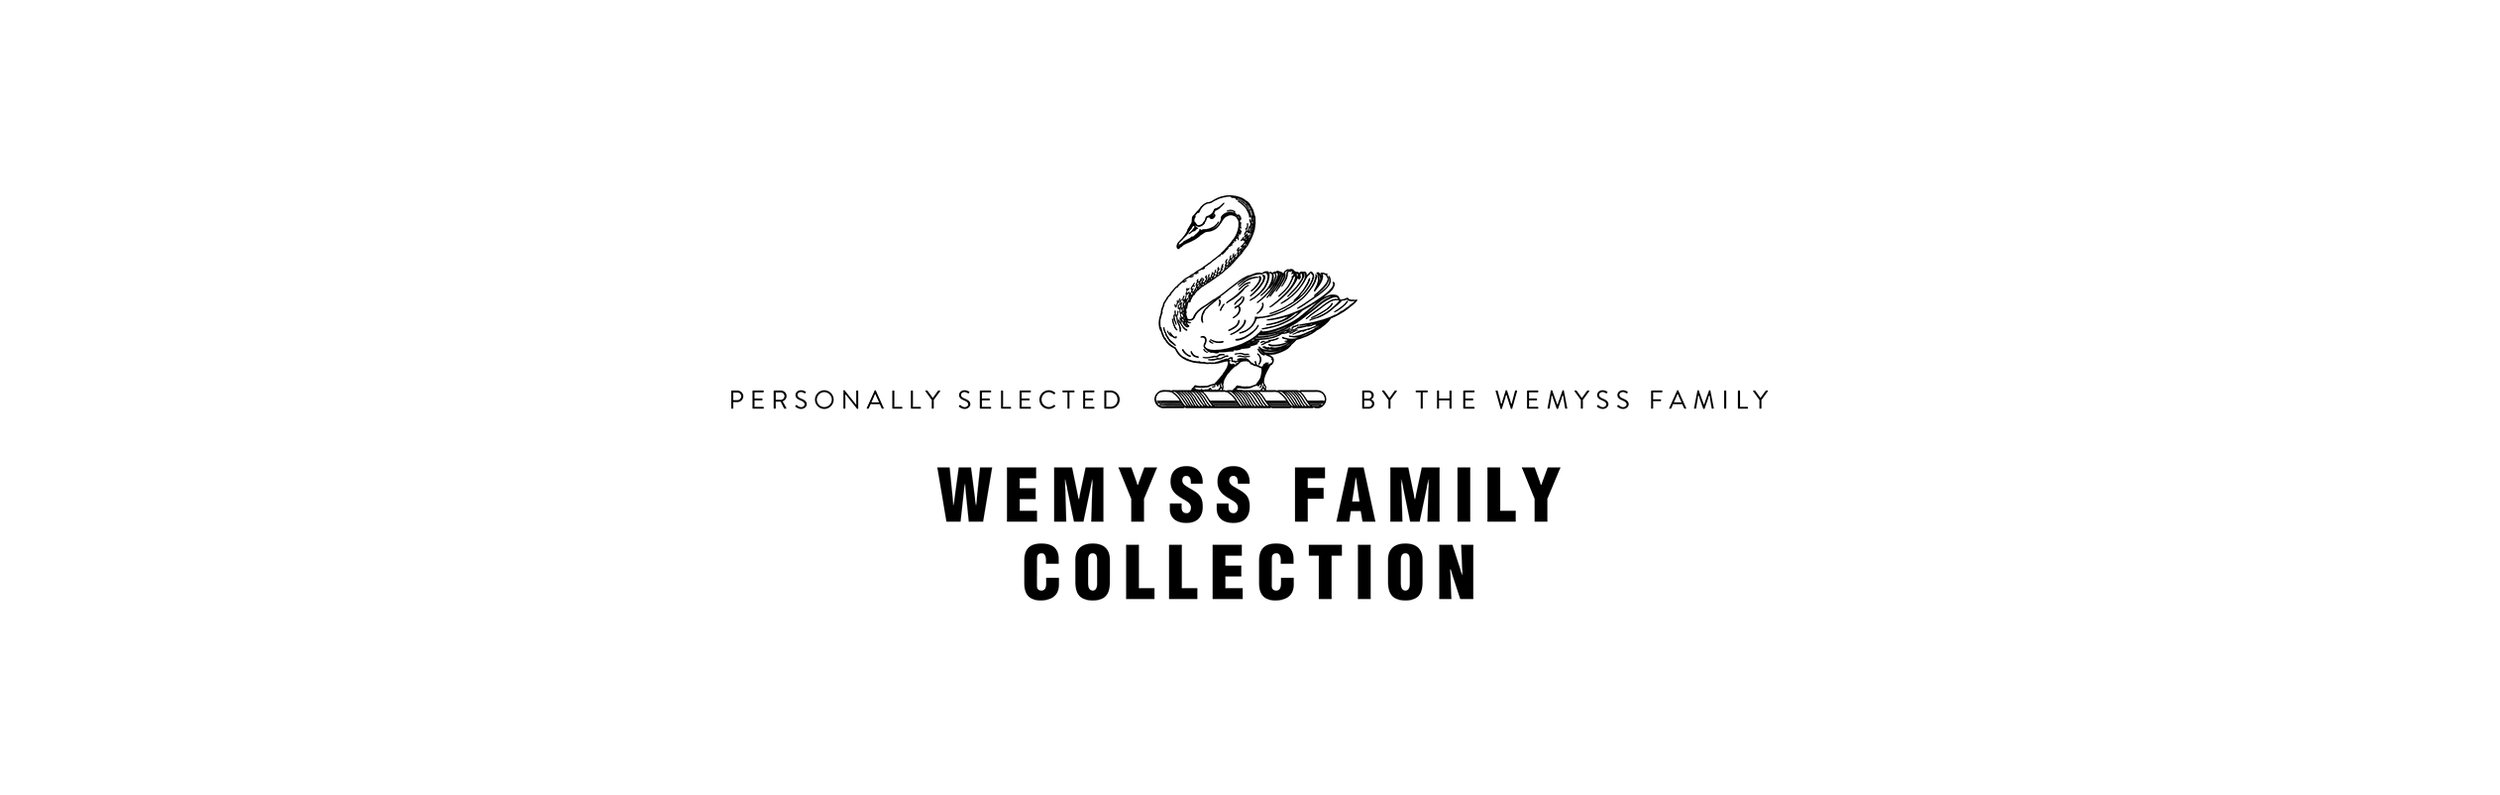 Wemyss+-+Family+Collection+Logo+banner.jpg